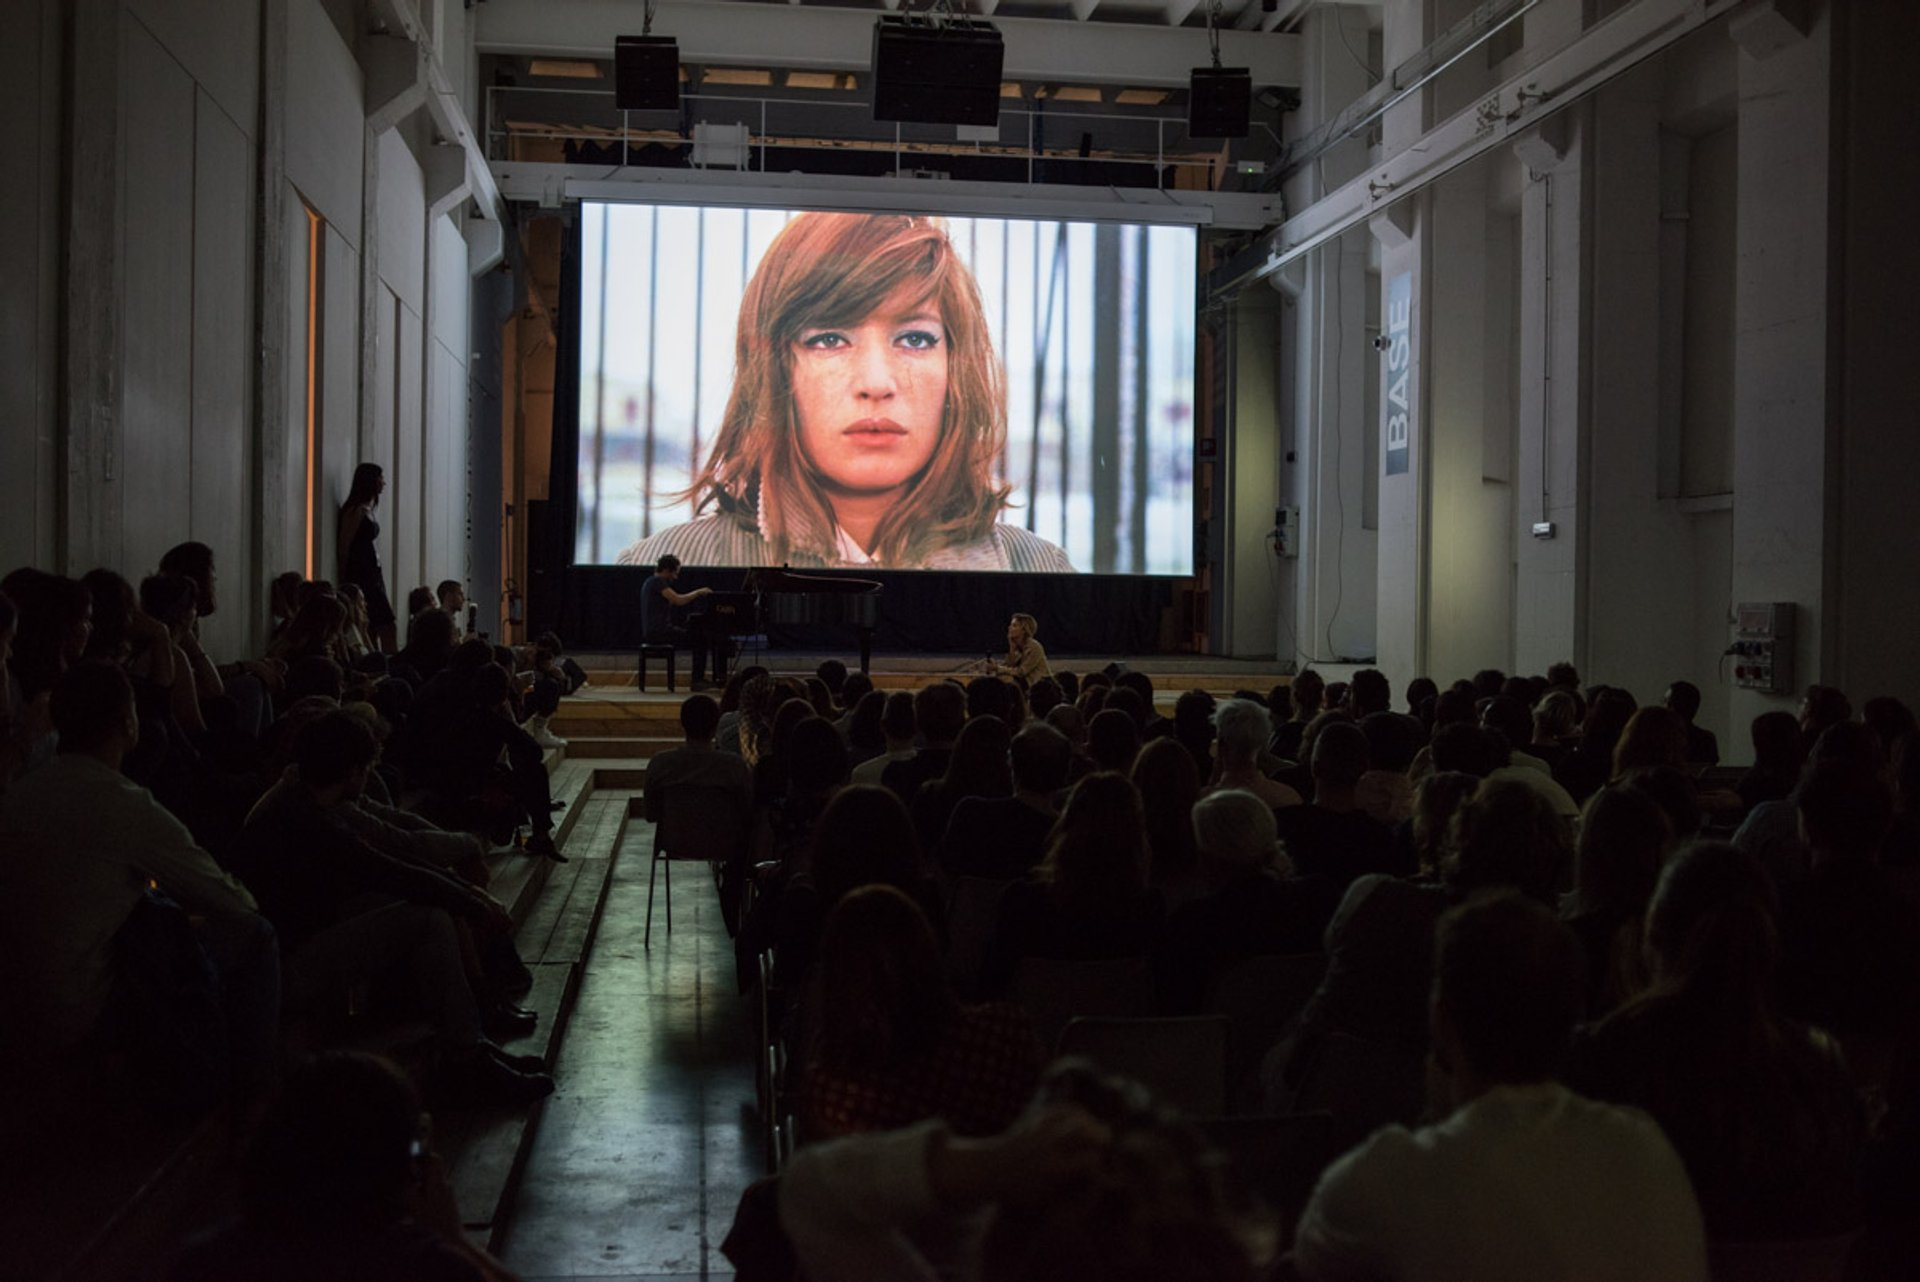 Best time for Milano Film Festival (MFF) 2020